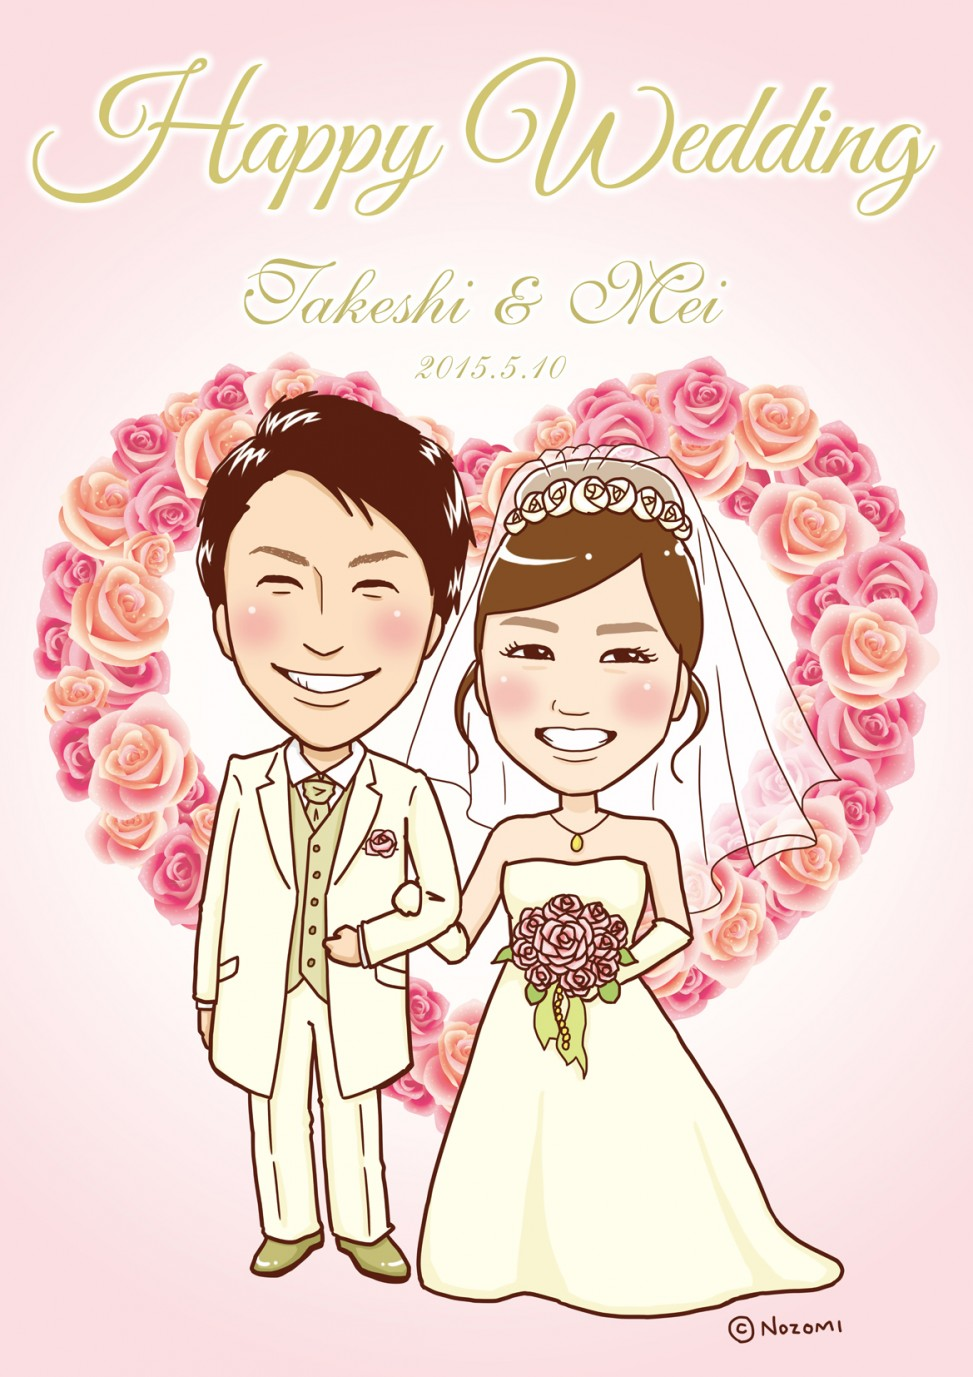 mei_wedding_20150510_illustration